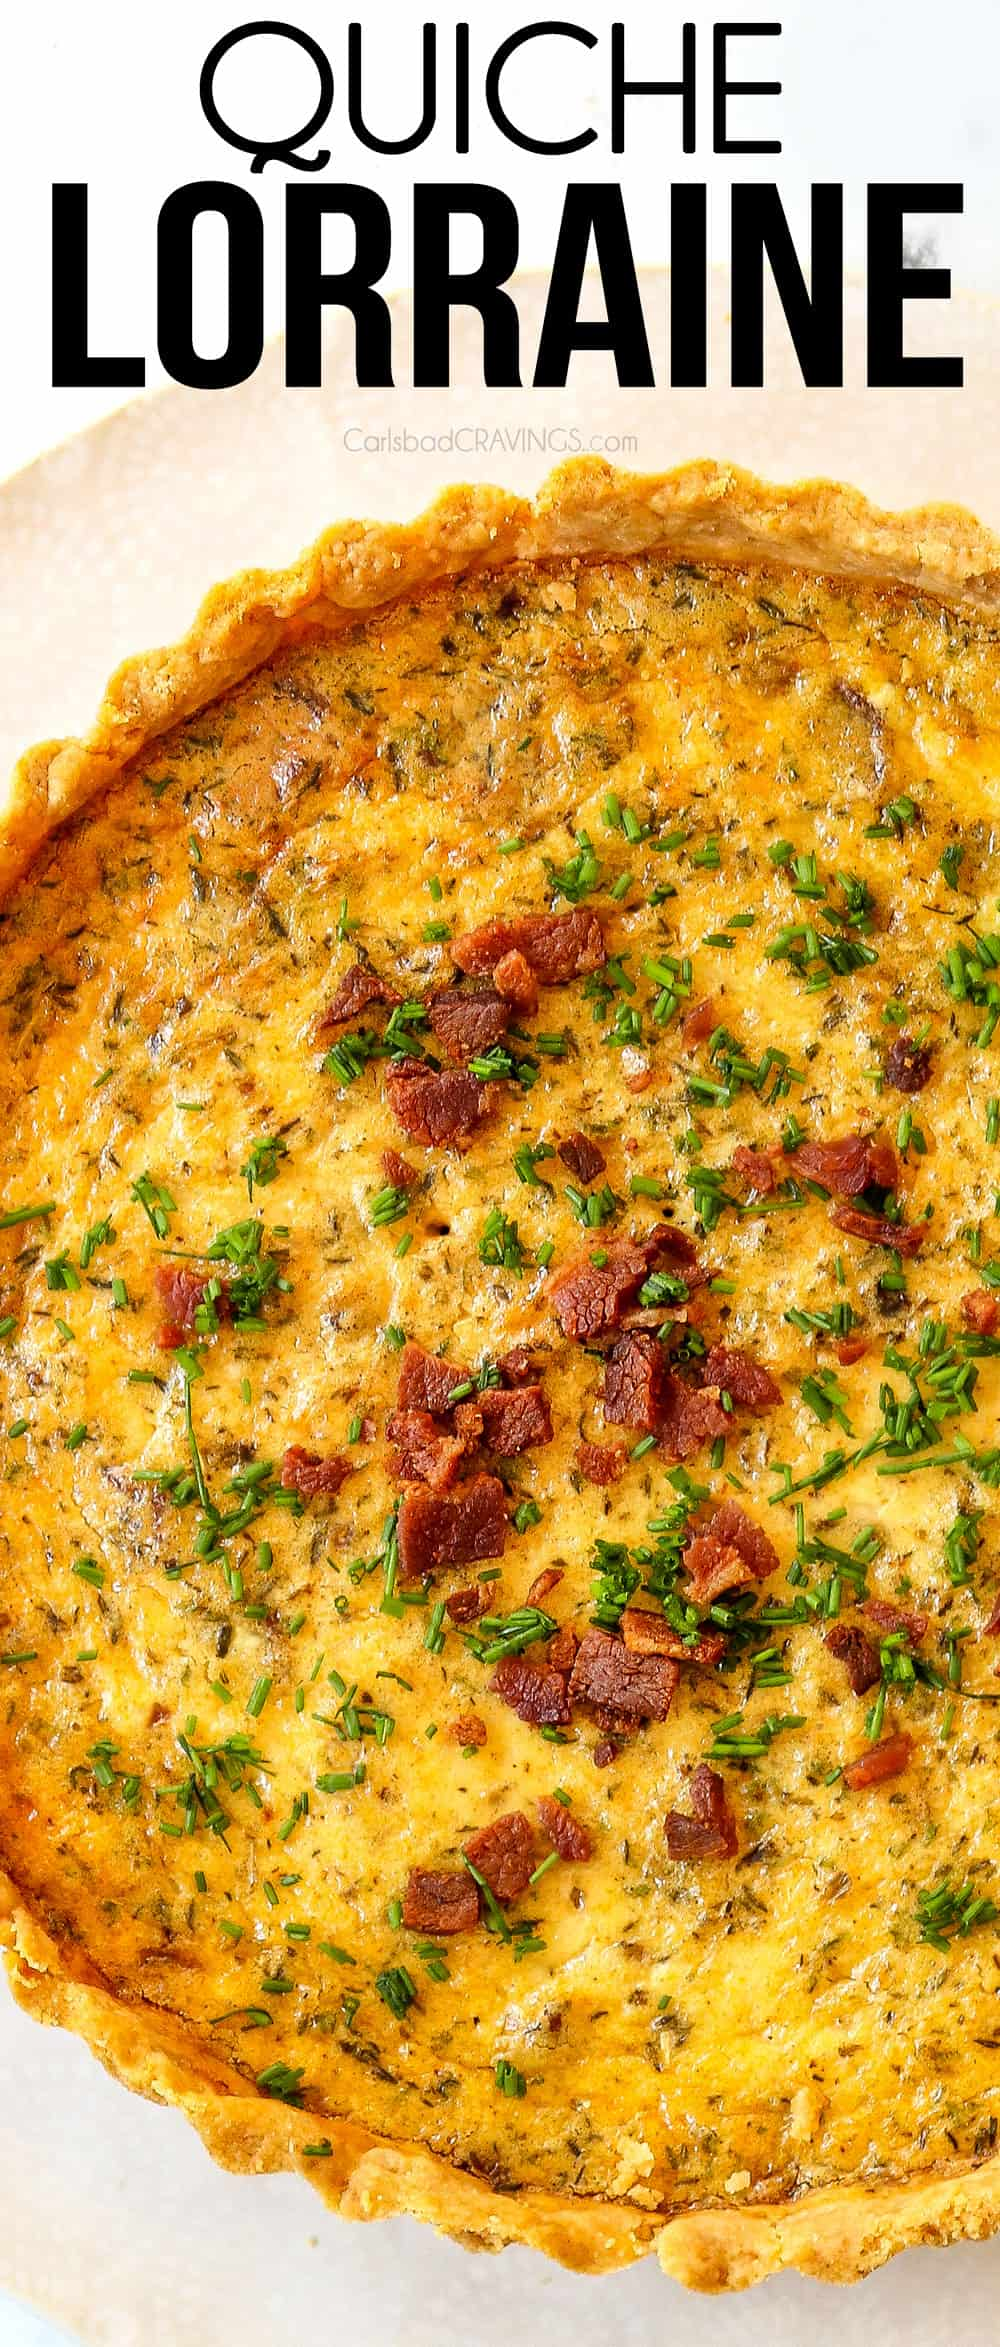 top view of Quiche Lorraine garnished with bacon and chives on a white plate